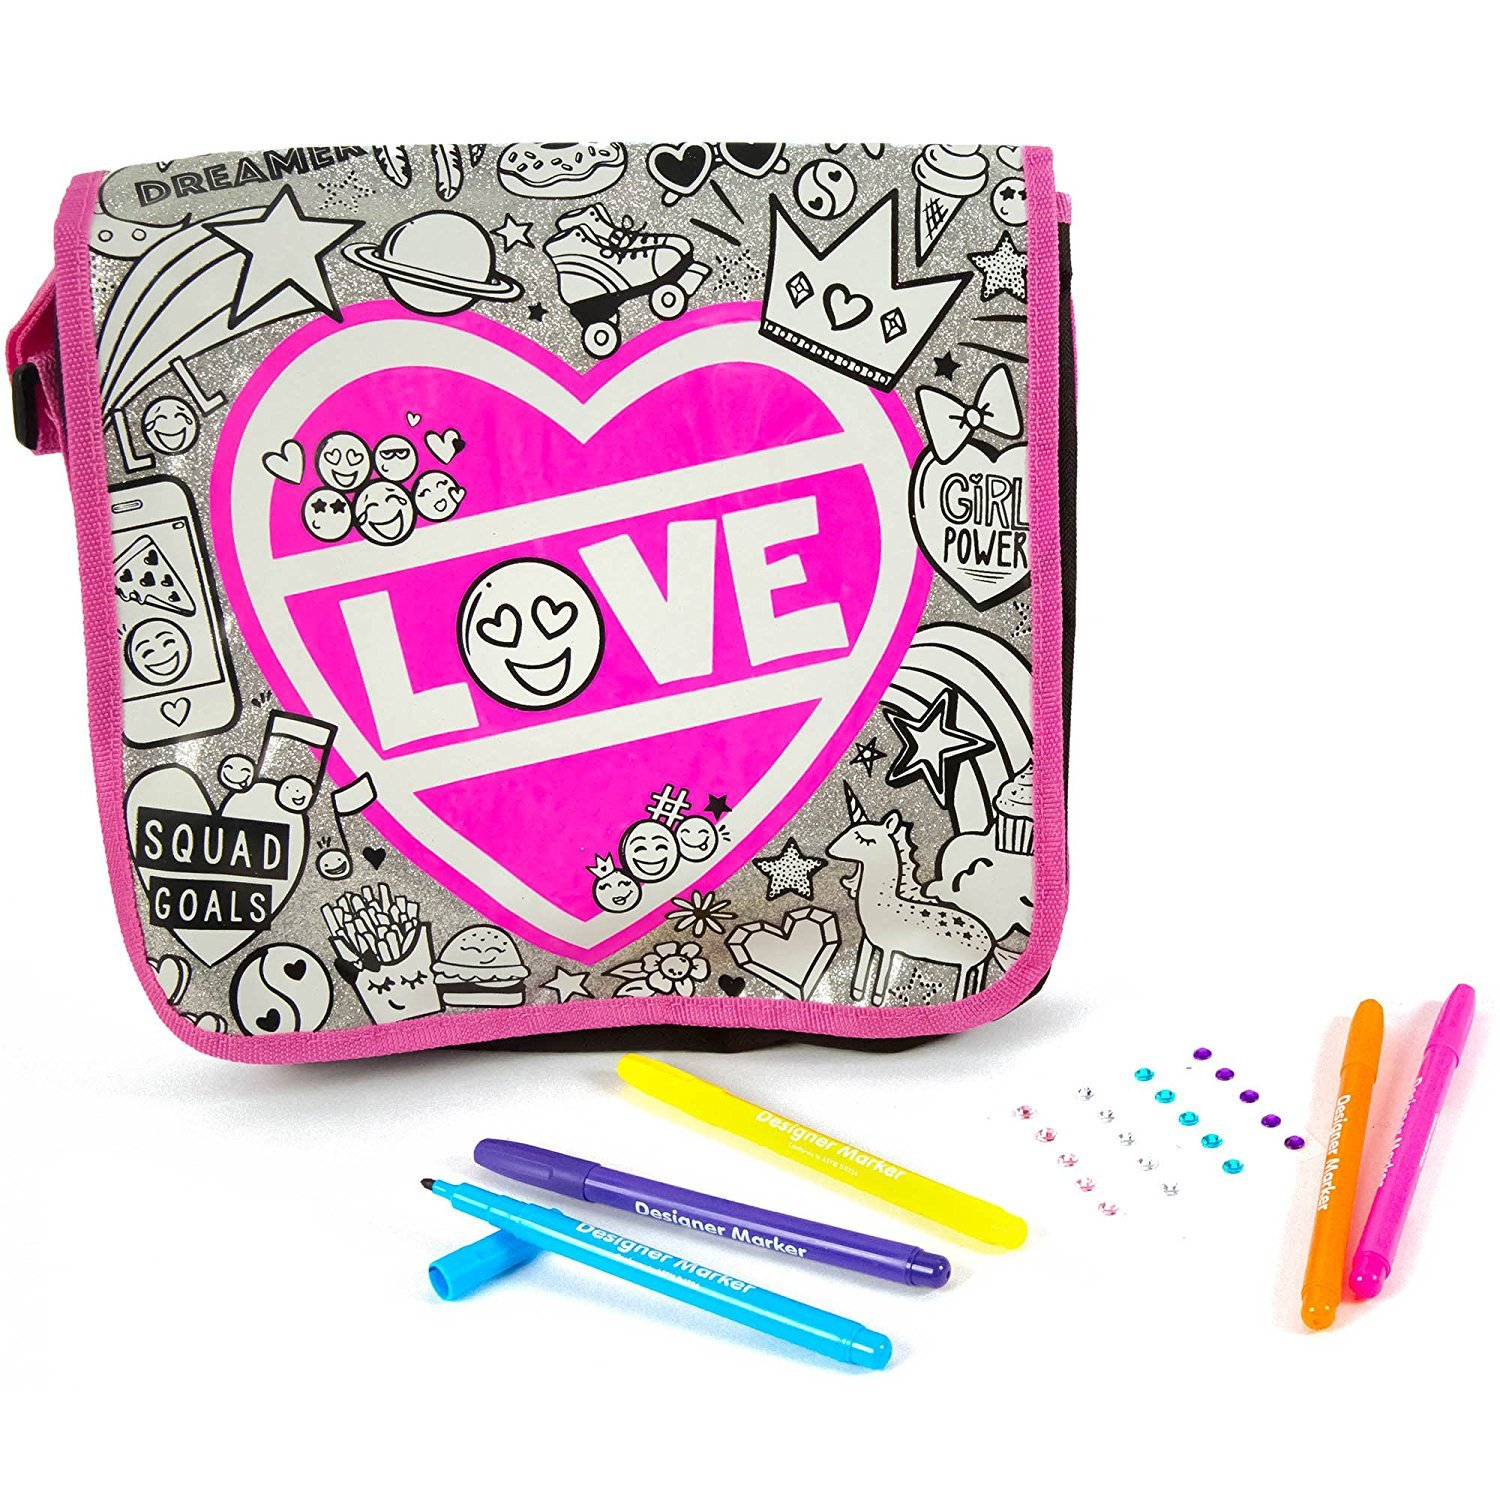 Just My Style Color Your Own Glitter Messenger Bag by Horizon Group USA by Just My Style (Image #2)